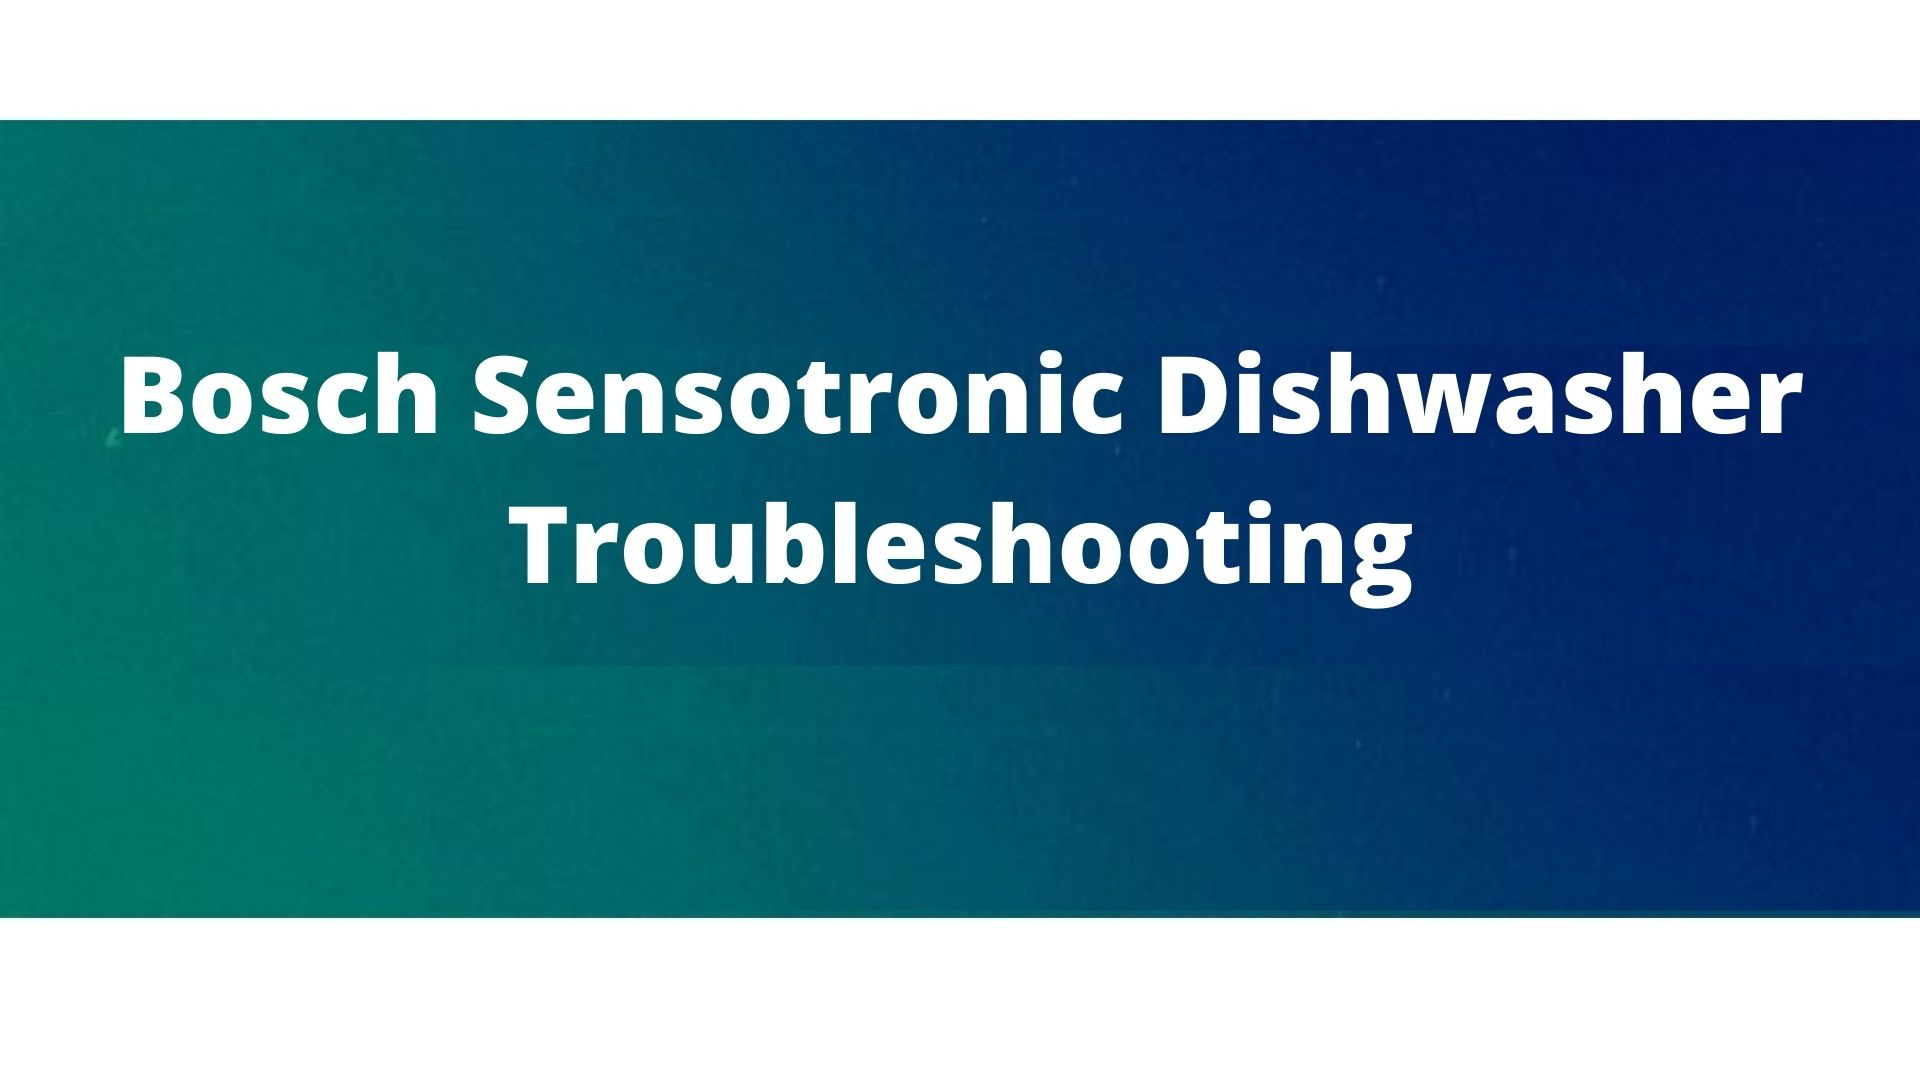 problems and their fixes for Bosch sensotronic dishwasher